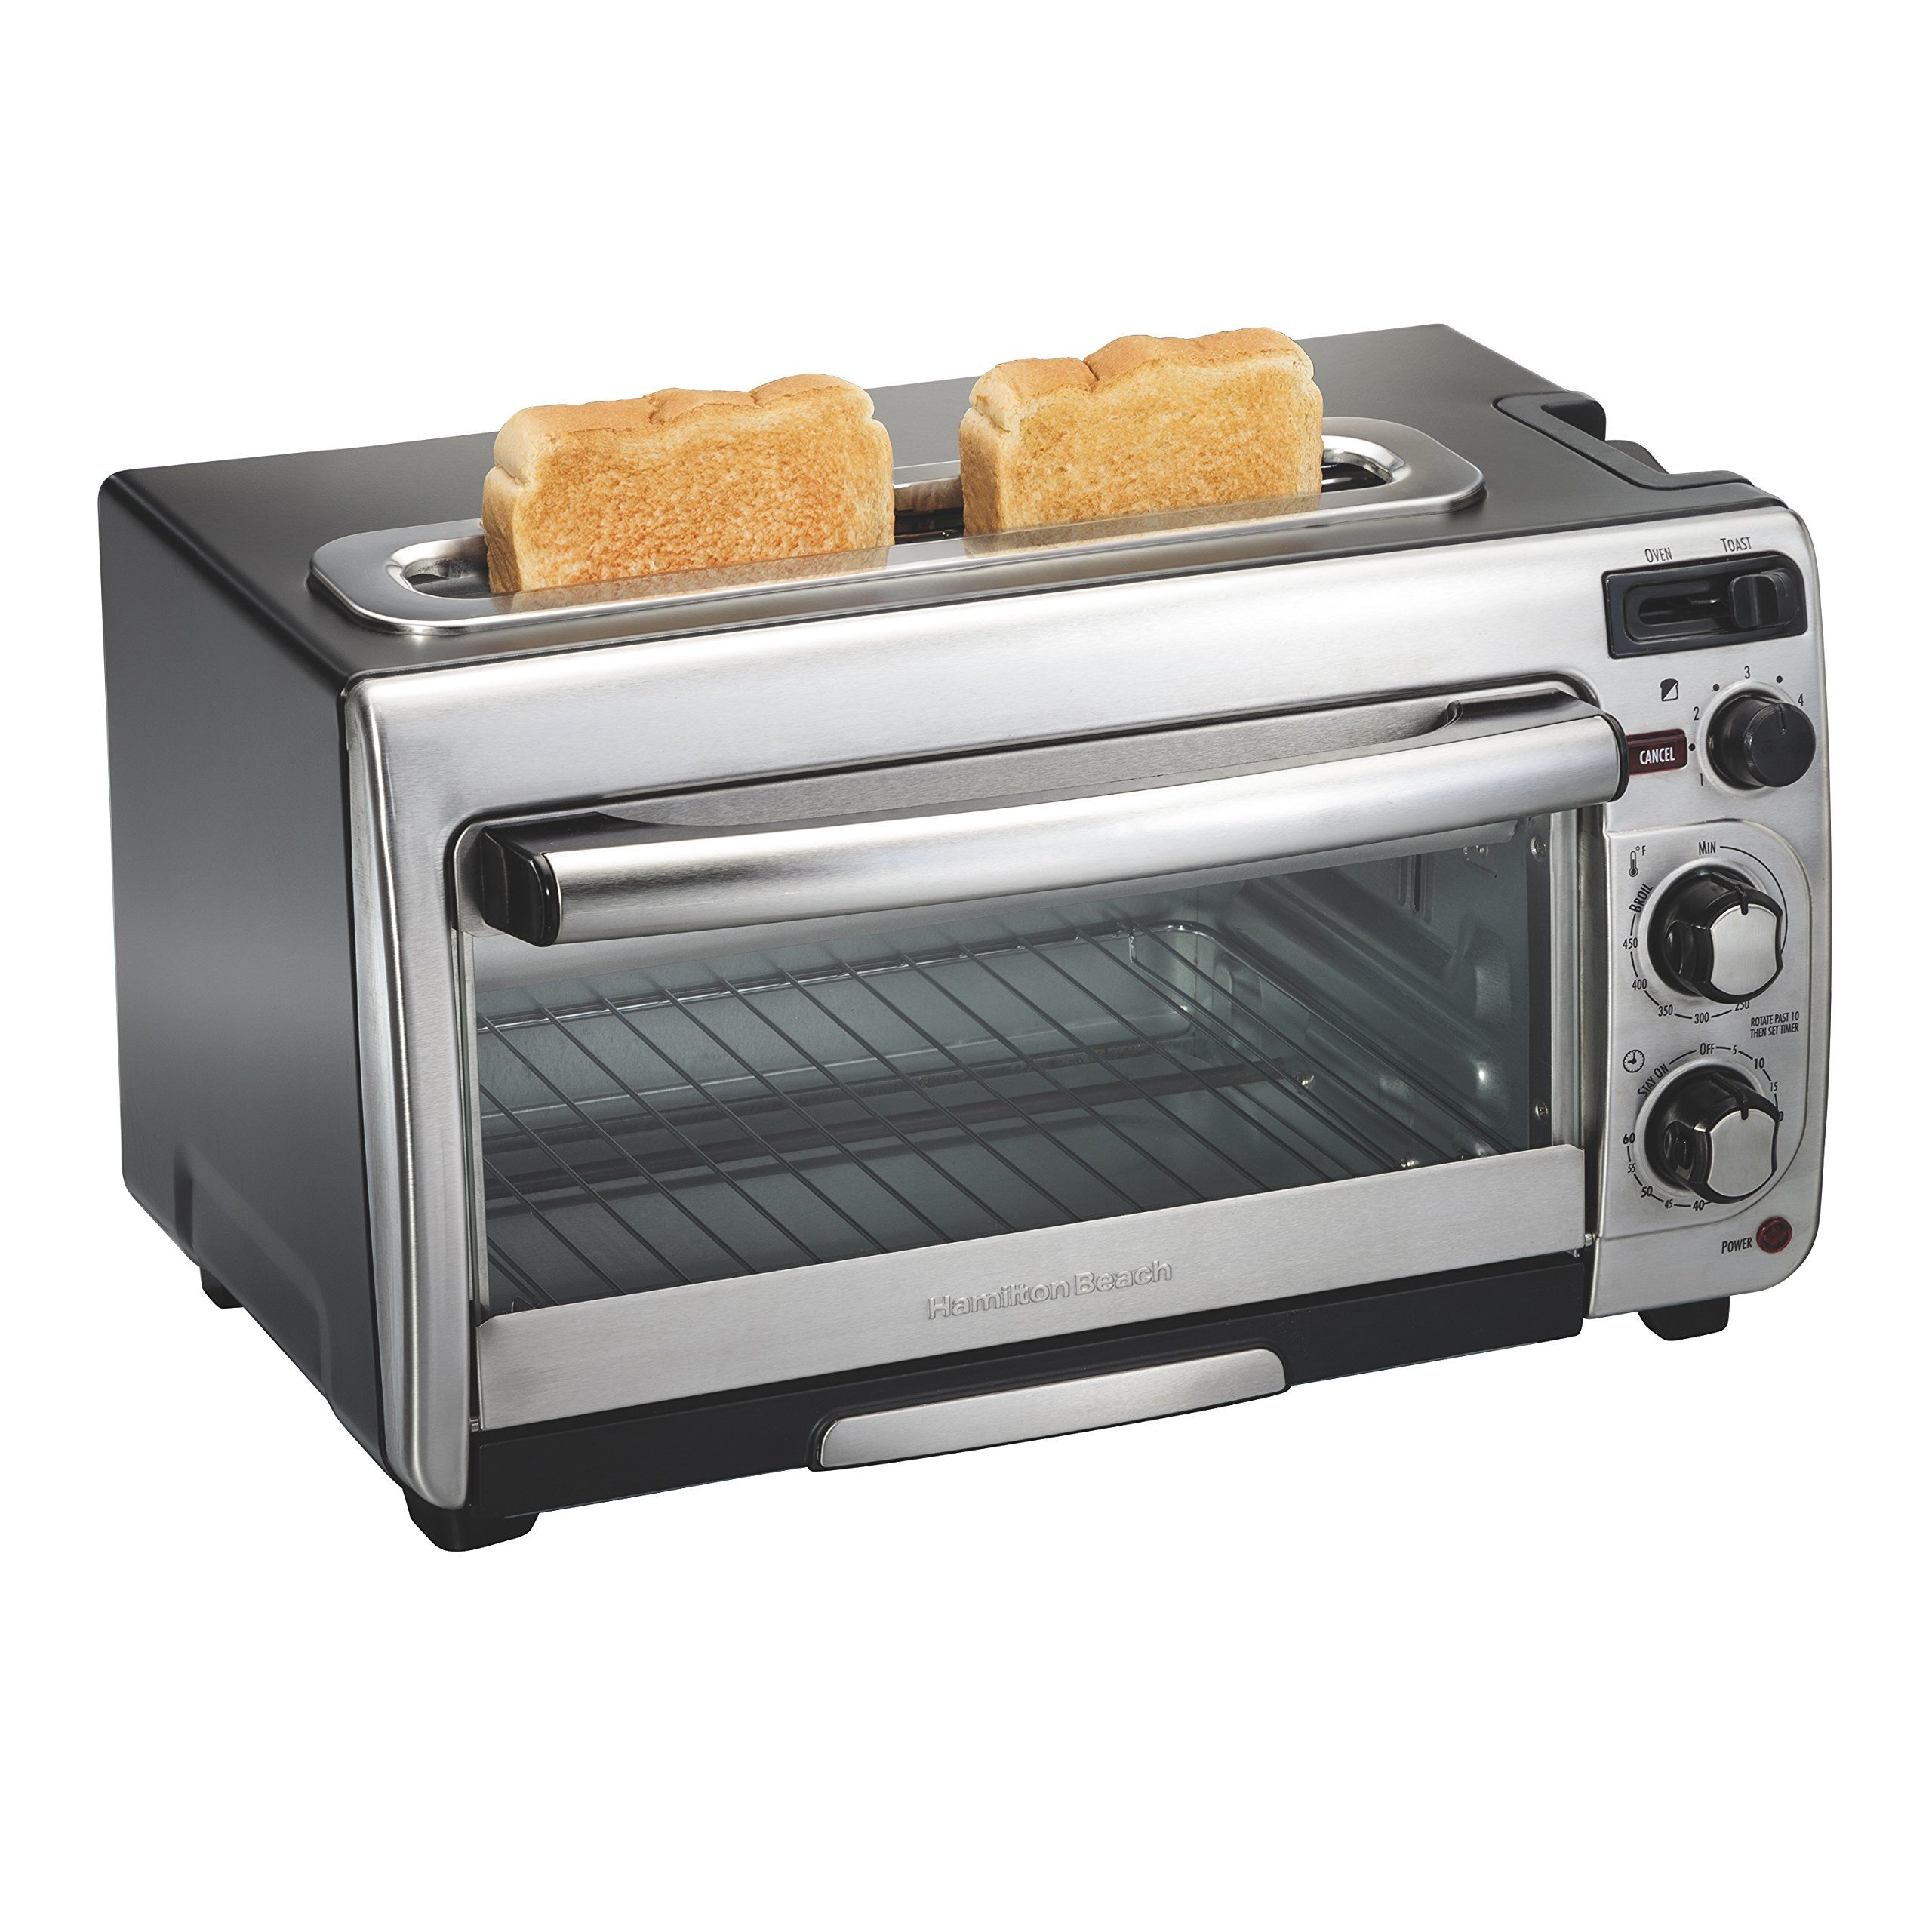 sale sjkelectrical oven midea toaster meo htm end pm i for